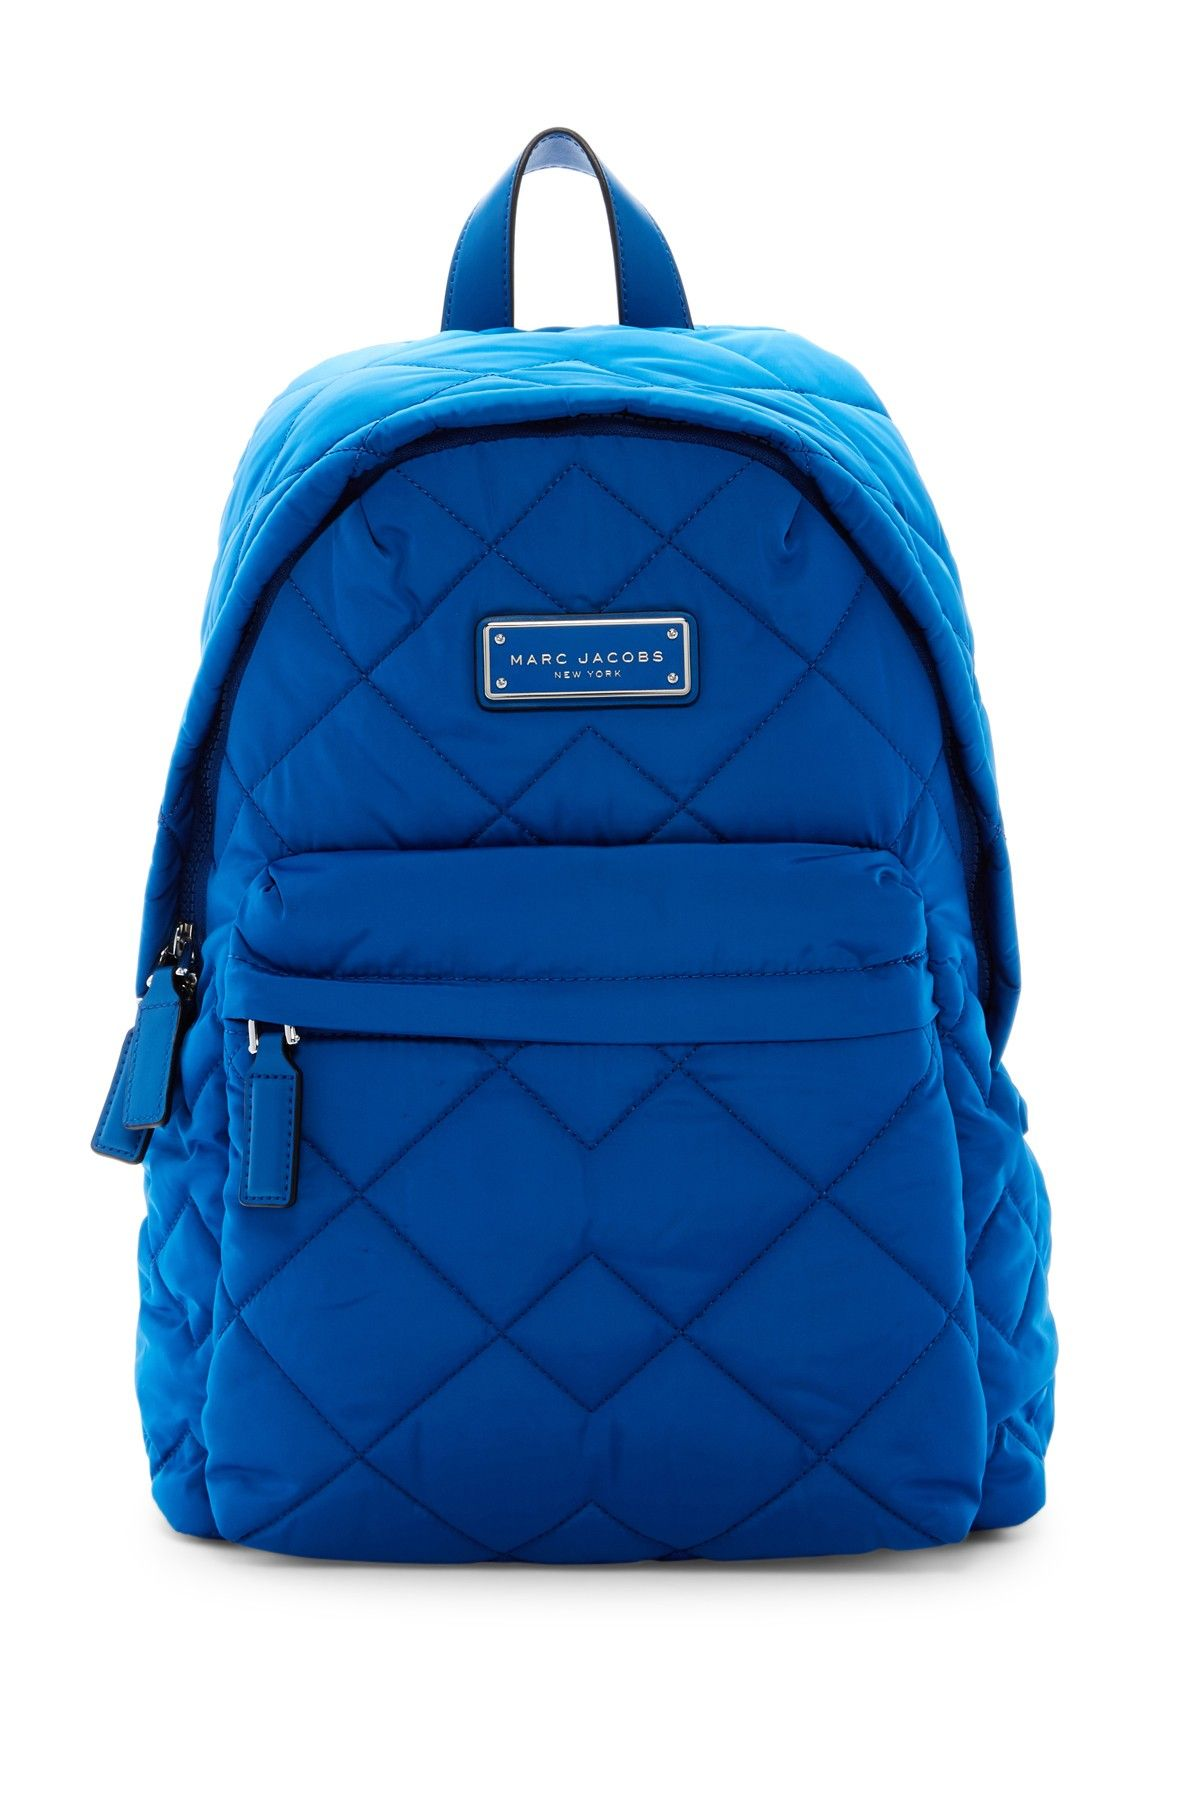 40d4fdbeeb969 Quilted Nylon Backpack by Marc Jacobs on  nordstrom rack